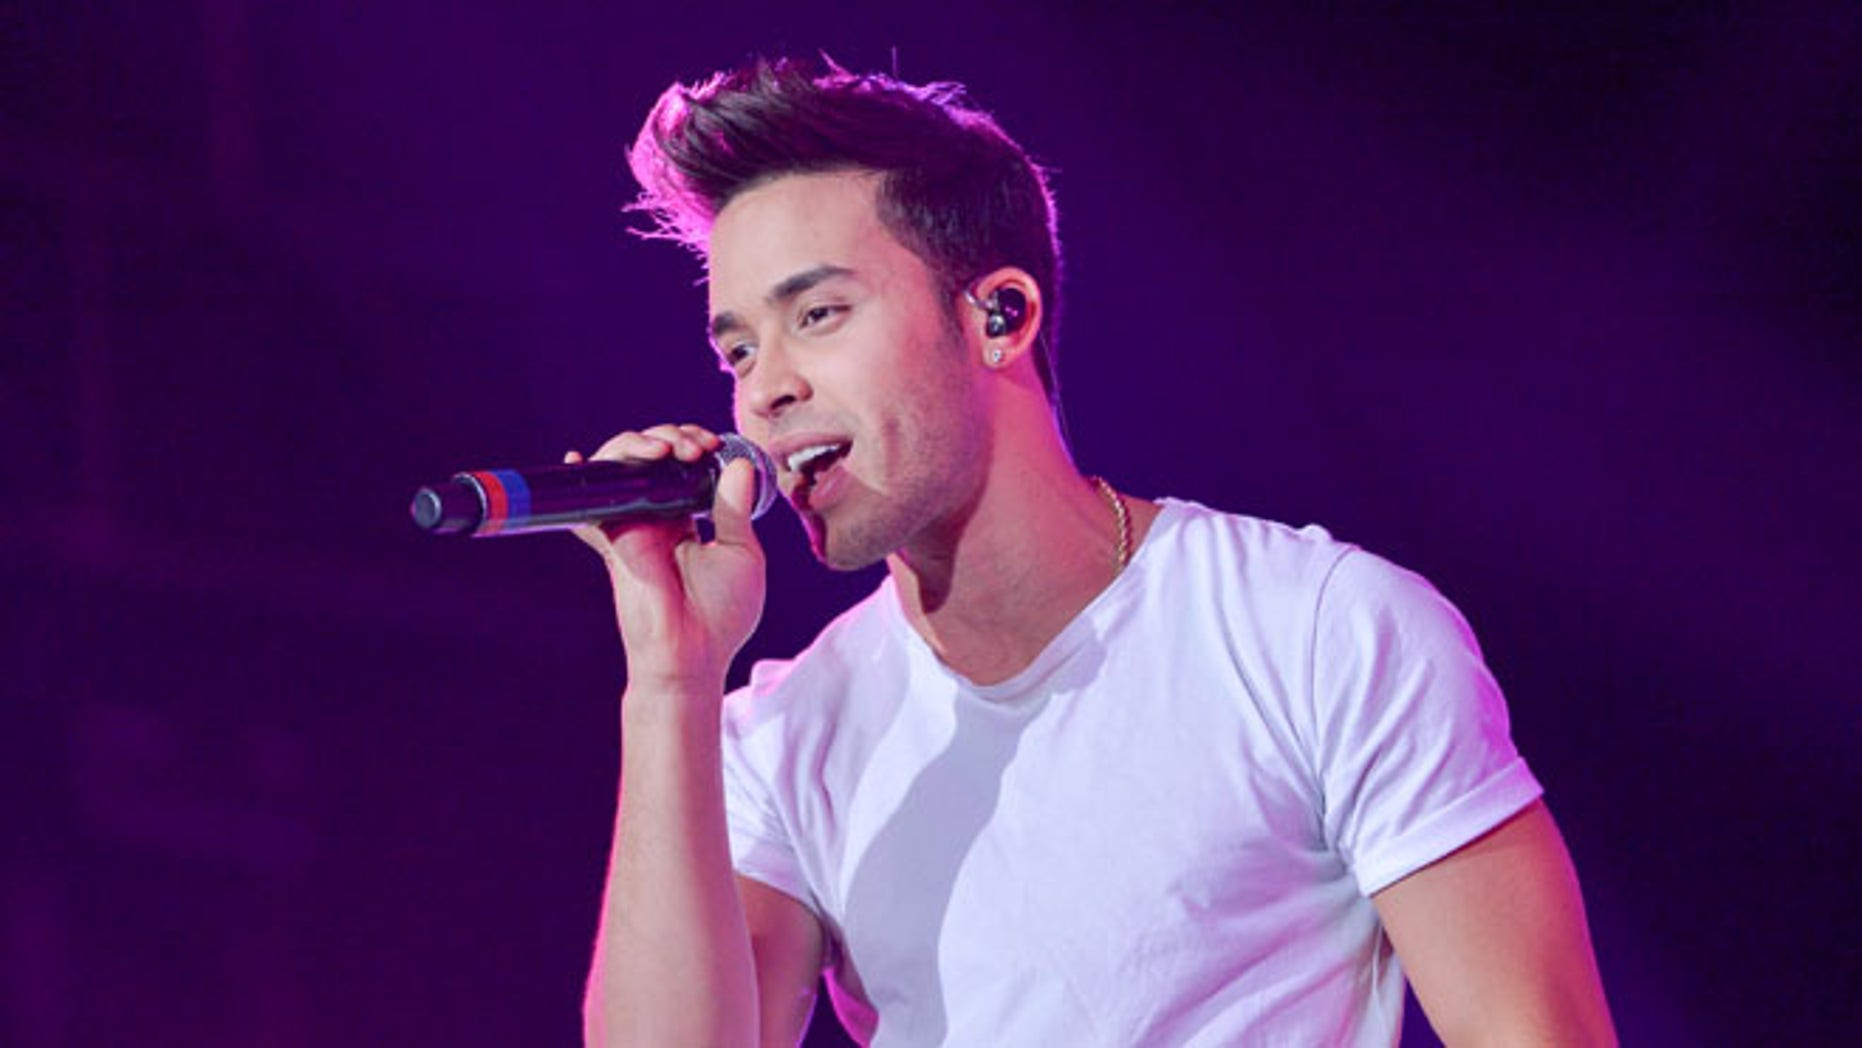 Prince Royce on stage on December 5, 2015 in Miami, Florida.